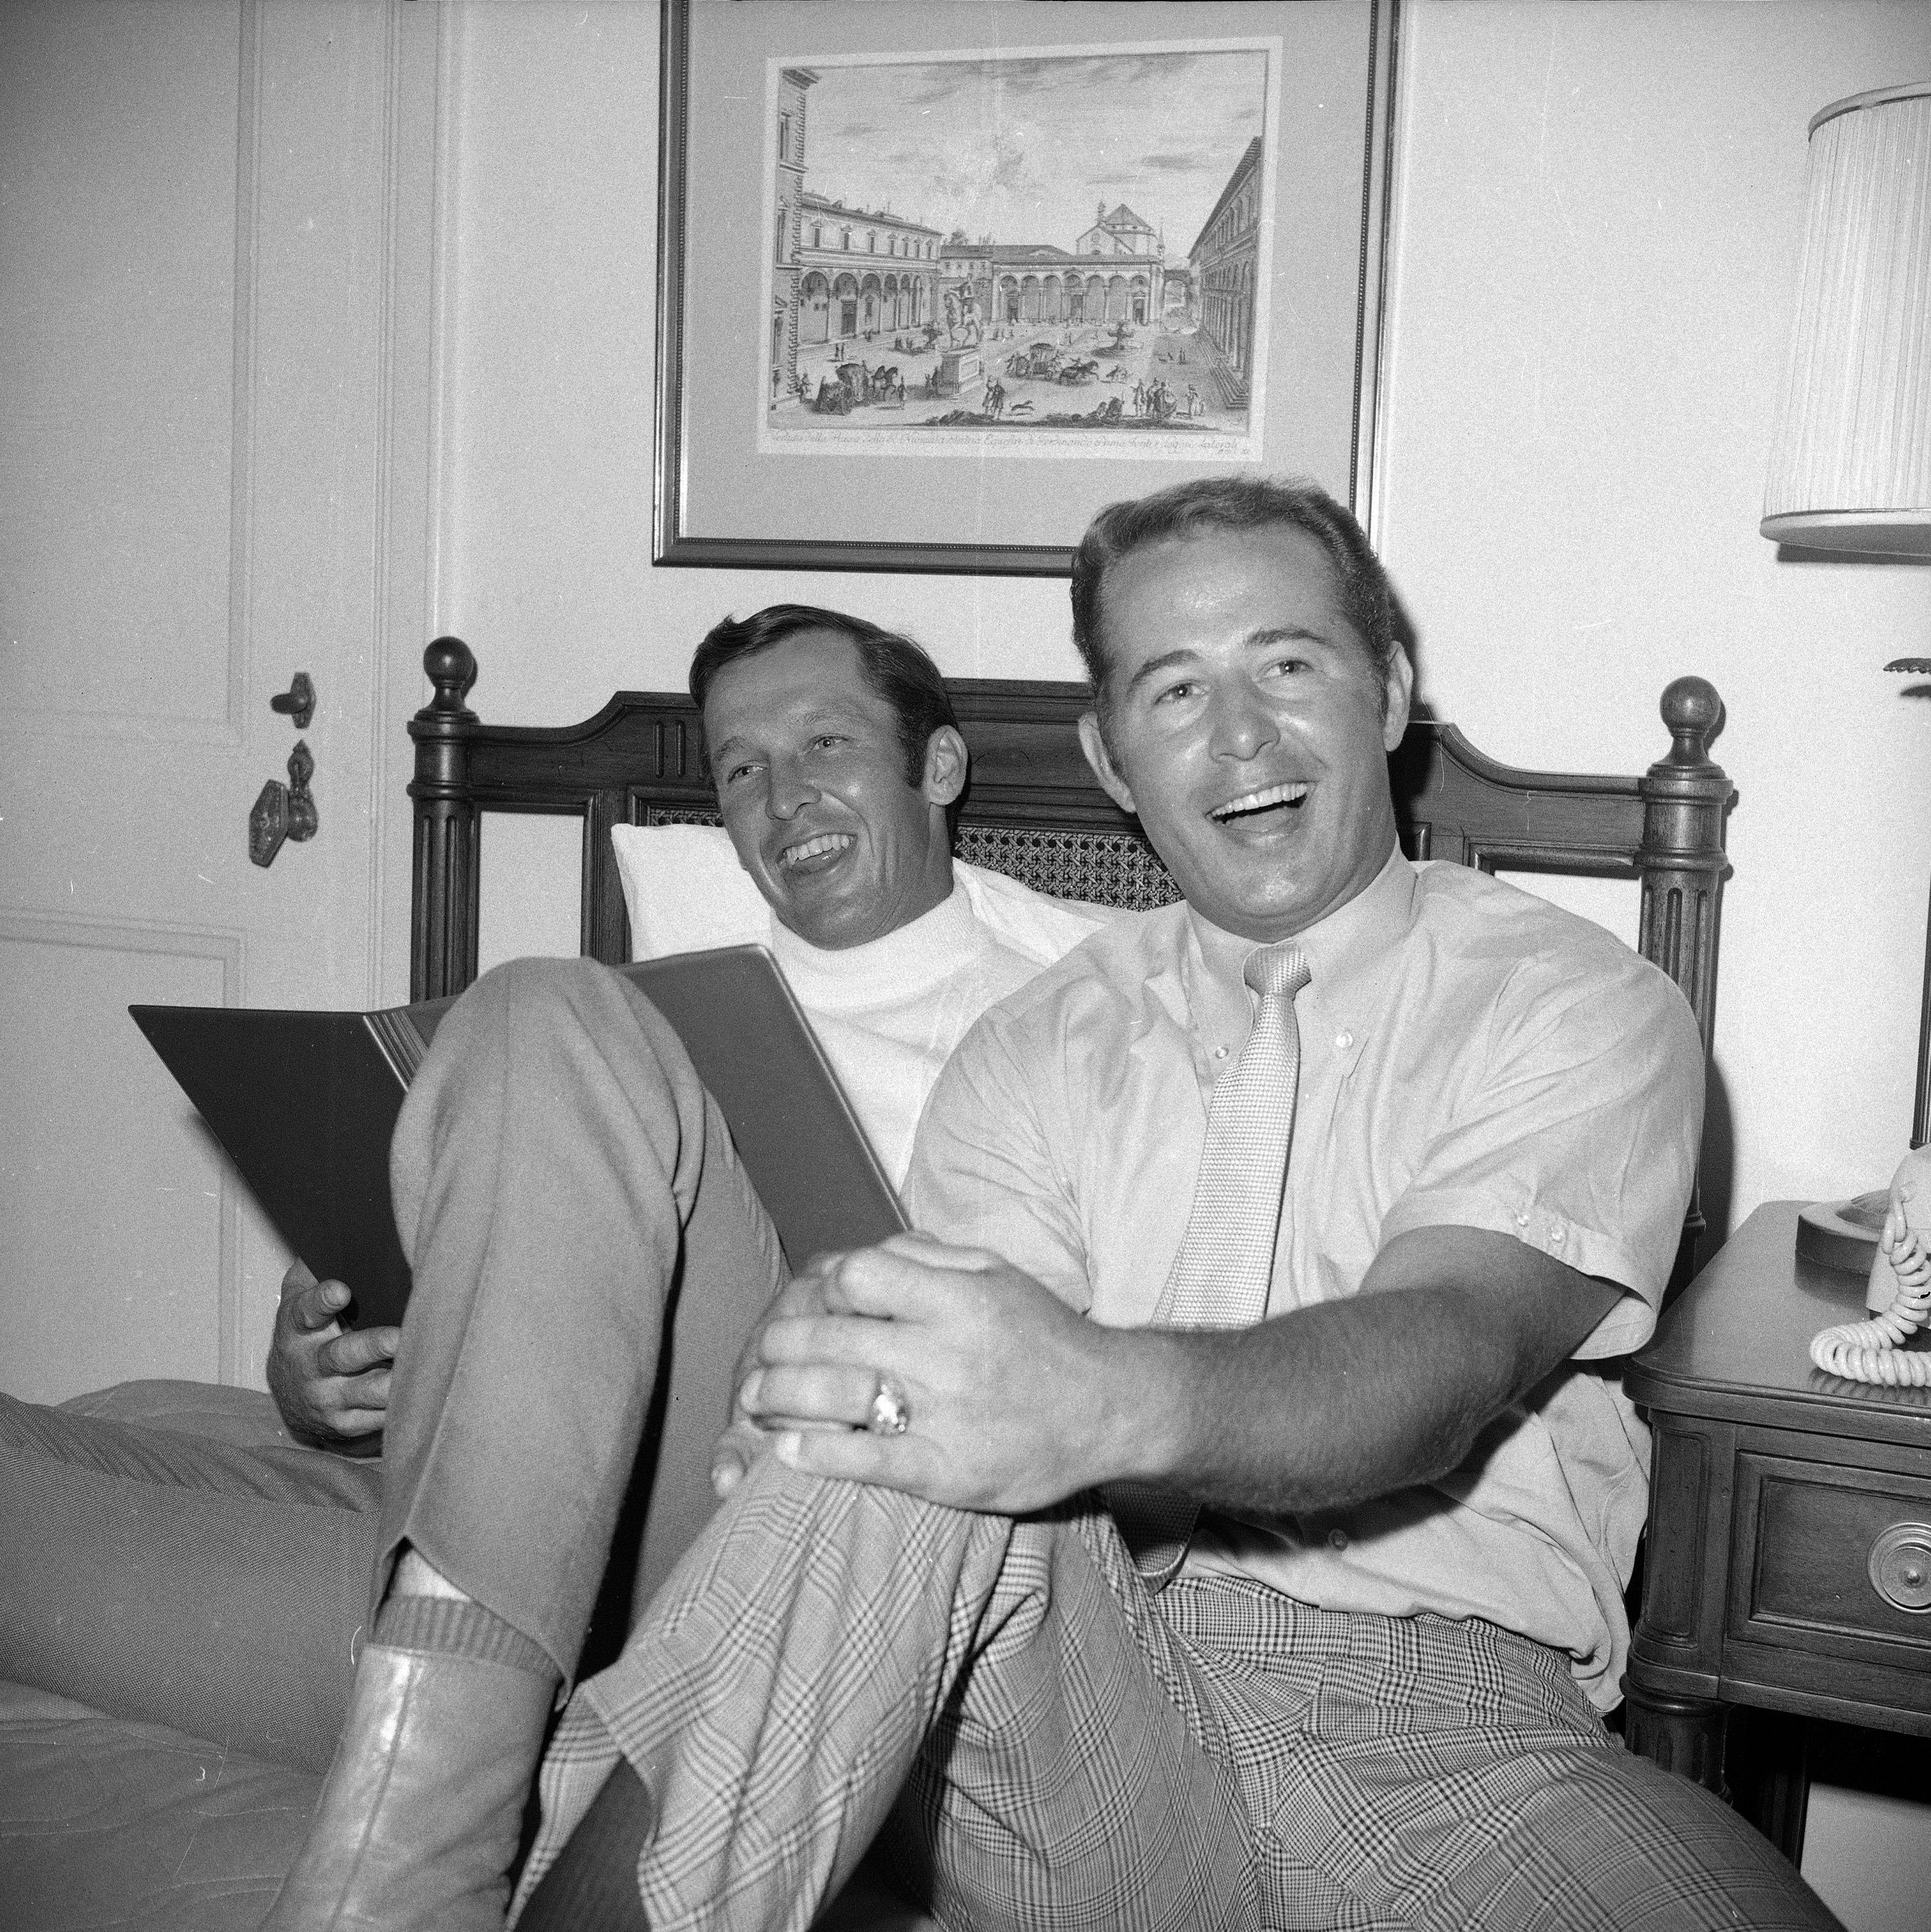 Chicago Cubs infielders Glenn Beckert, left, and Ron Santo relax in their hotel room at the Waldorf Astoria in New York Sept. 8, 1969 after arriving for a two-game series against the Mets.